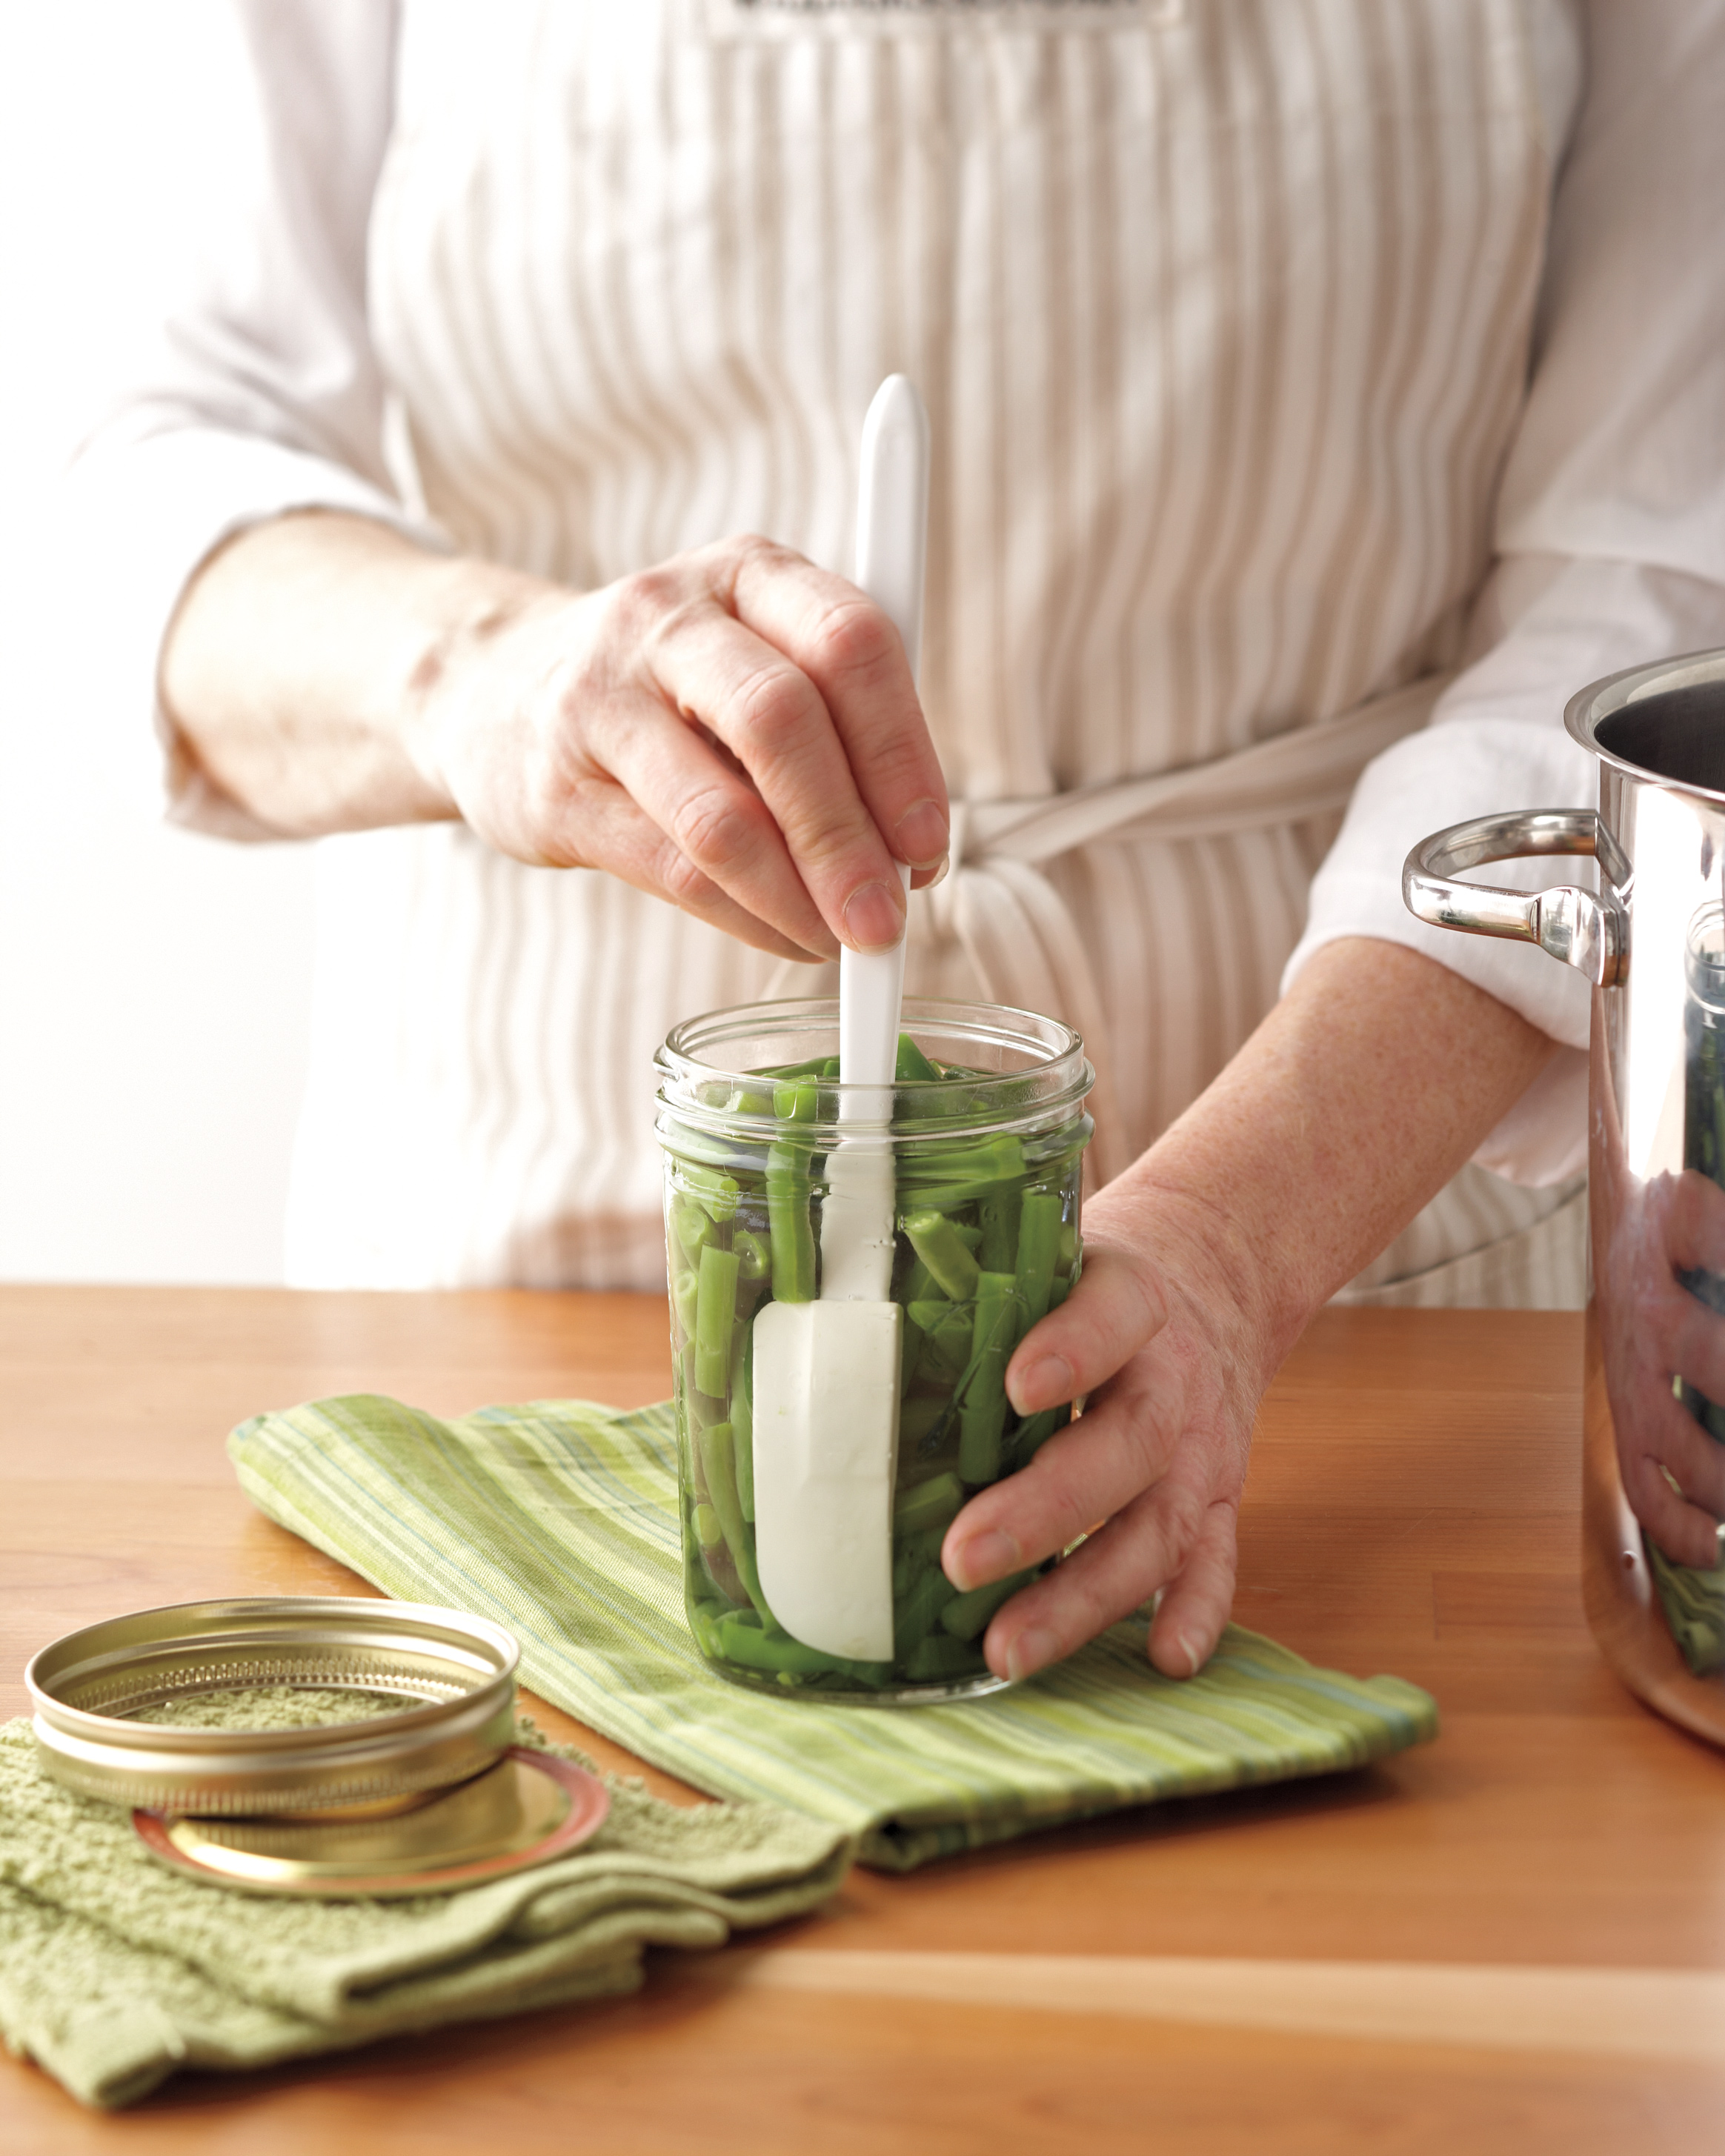 Removing air bubbles from canned green beans for pressure canning